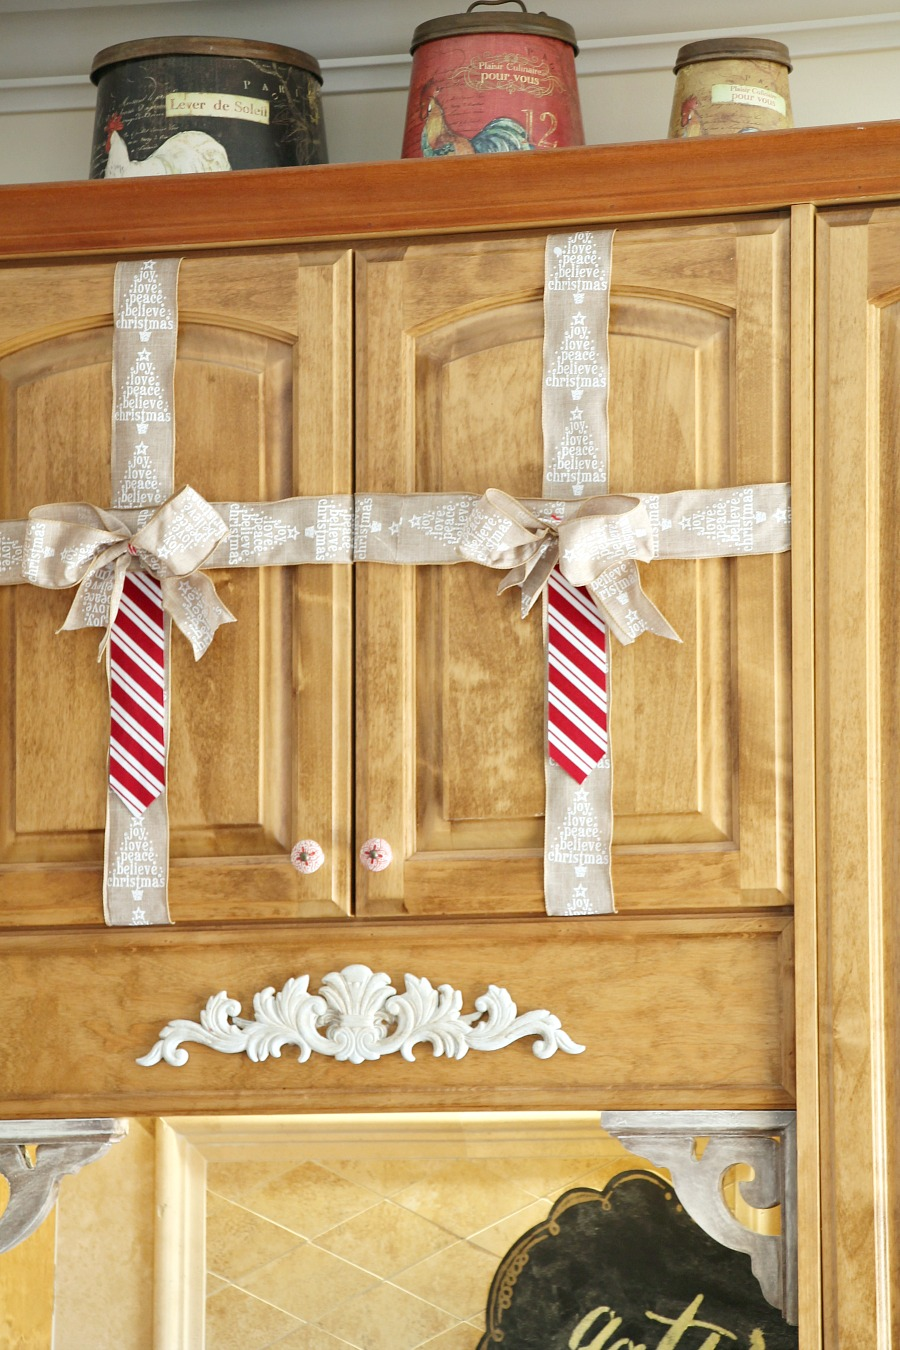 Simple christmas decorating ideas in the kitchen debbiedoos for What kind of paint to use on kitchen cabinets for christmas glitter stickers